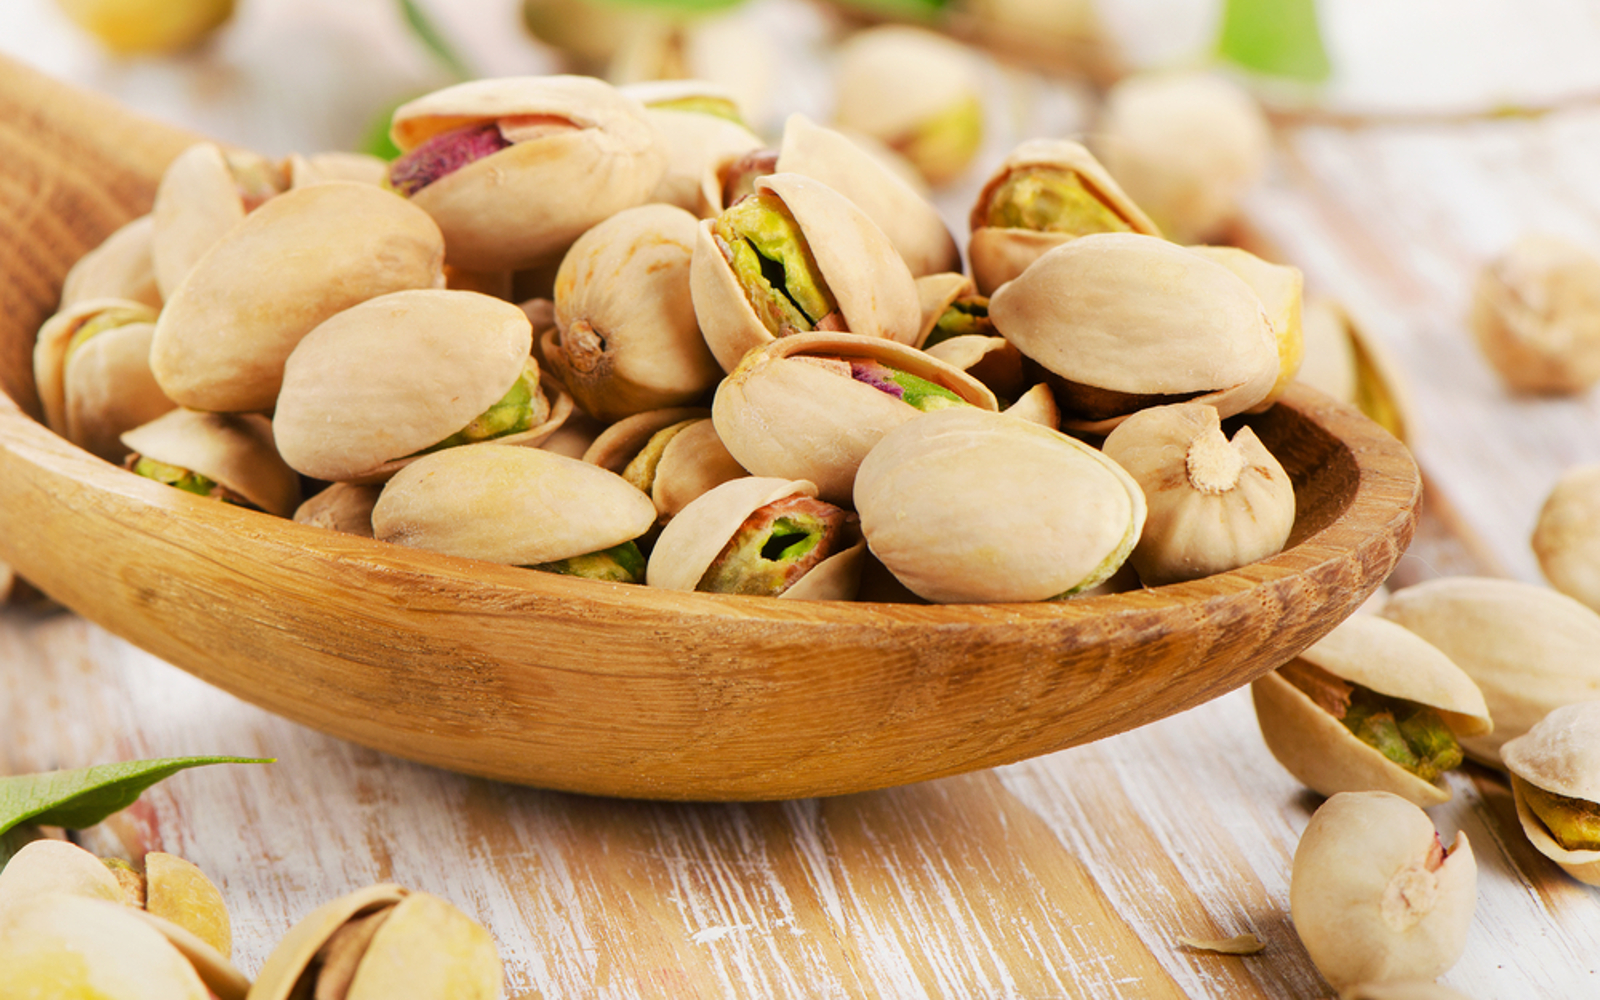 Bowl of pistachios with shells